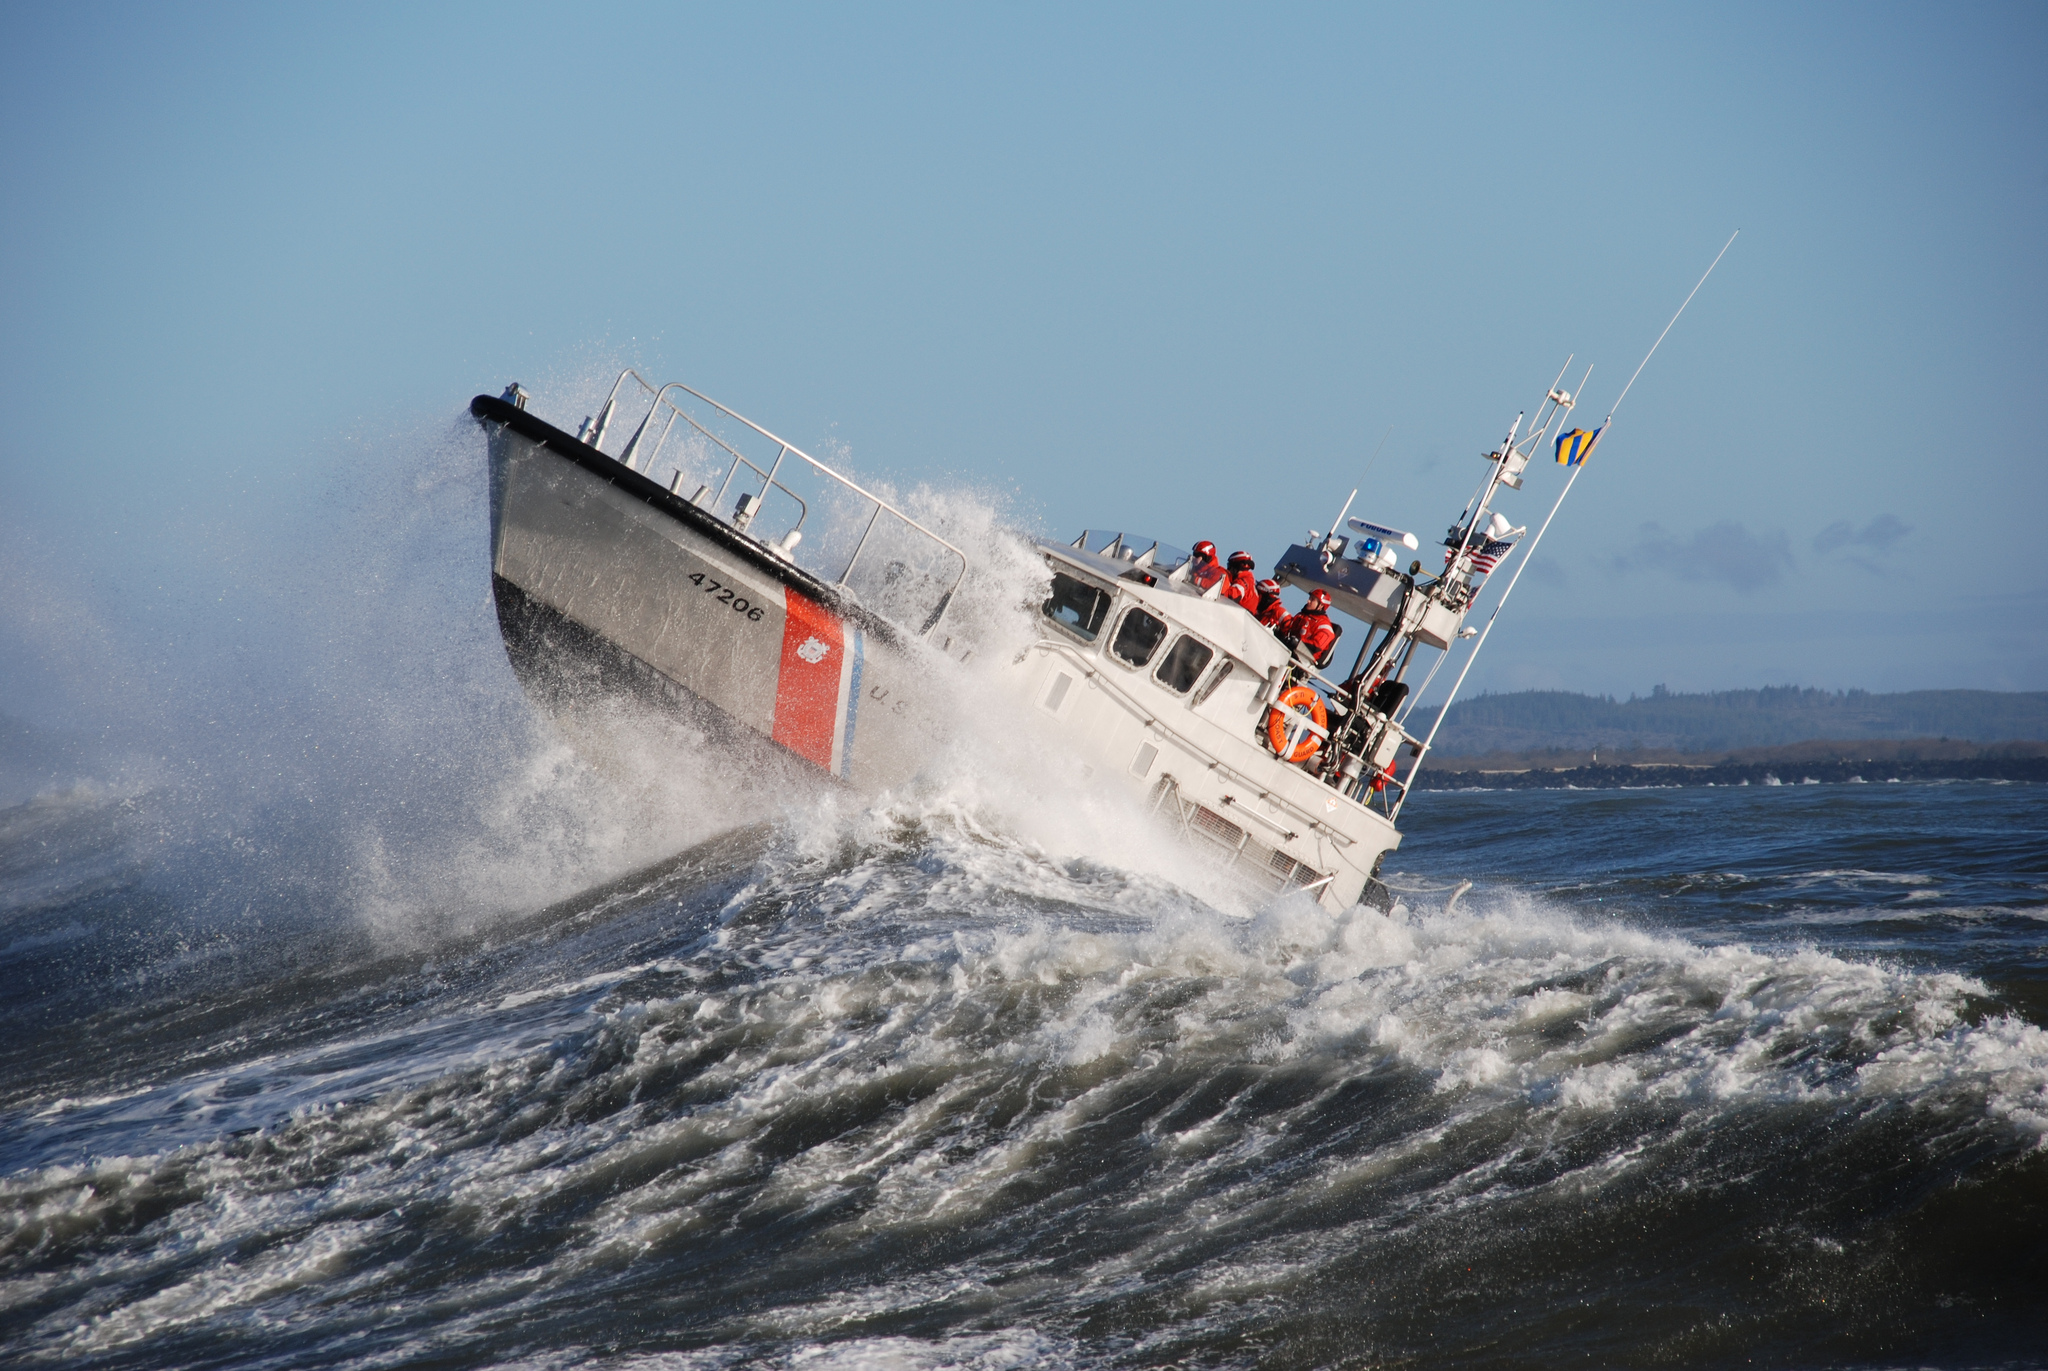 United States Coast Guard Uscg Hd Wallpaper Background